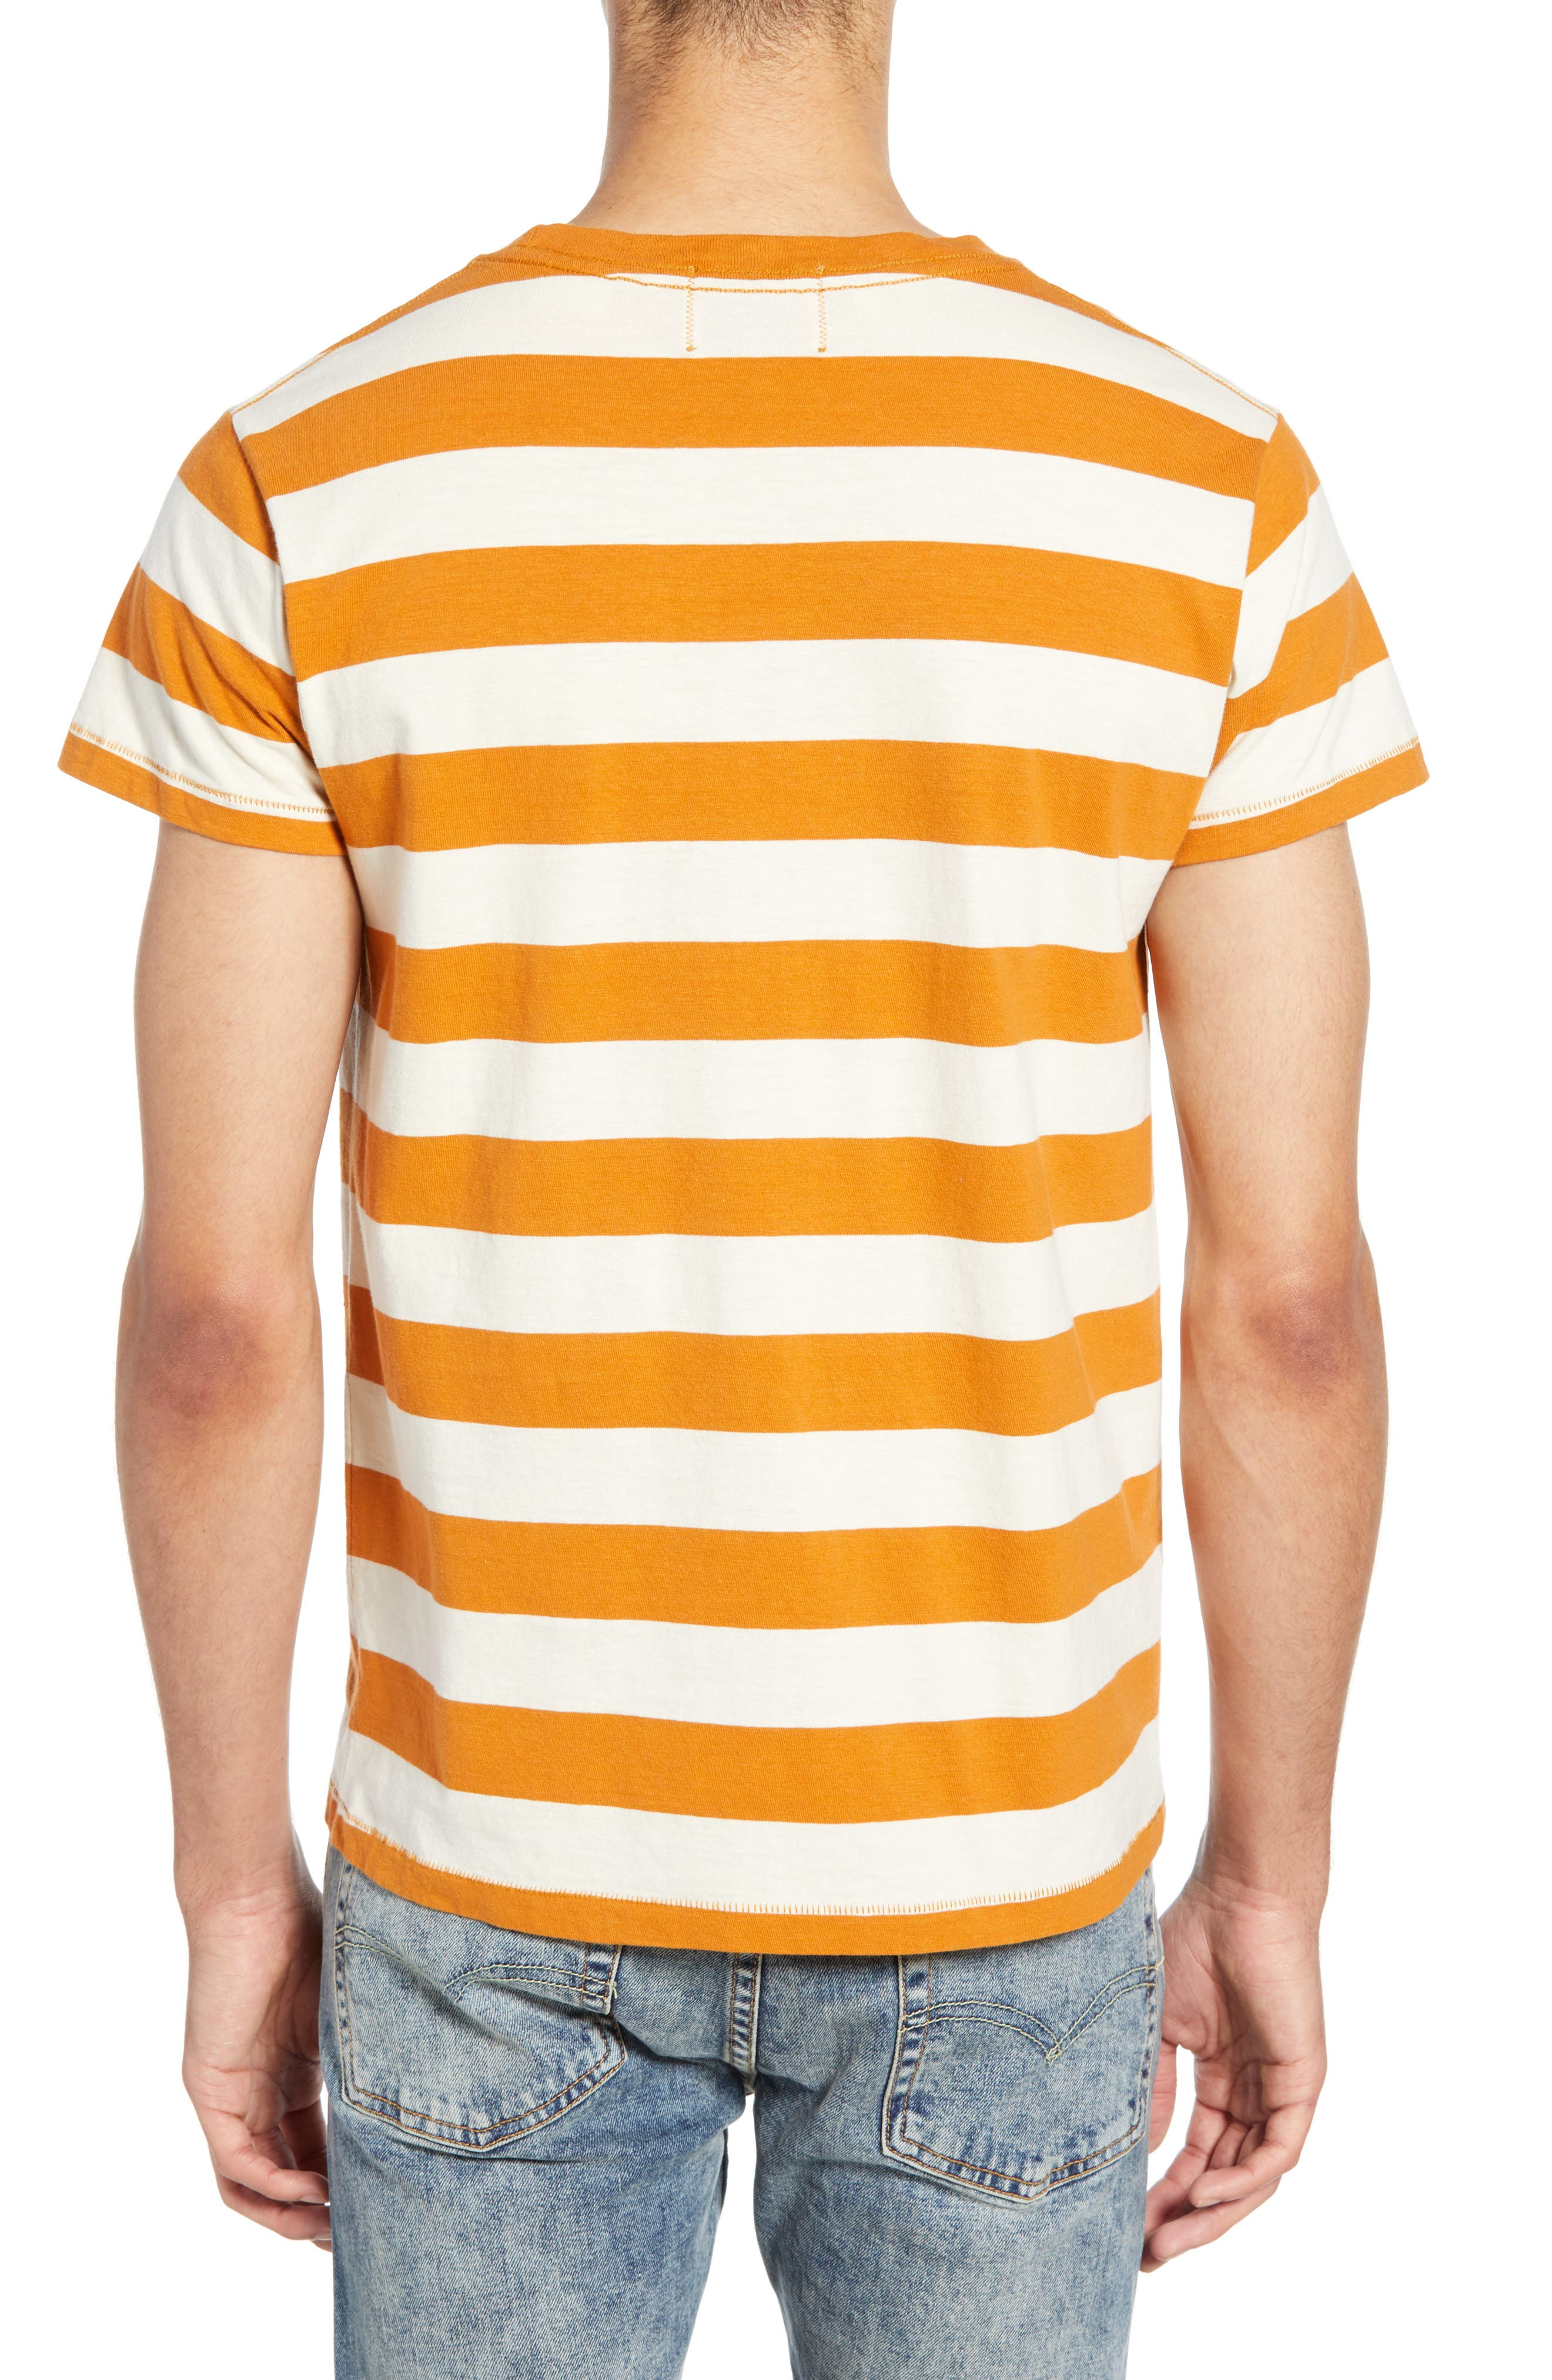 933f39ff Men's Levi's® Vintage Clothing T-Shirts, Tank Tops, & Graphic Tees |  Nordstrom